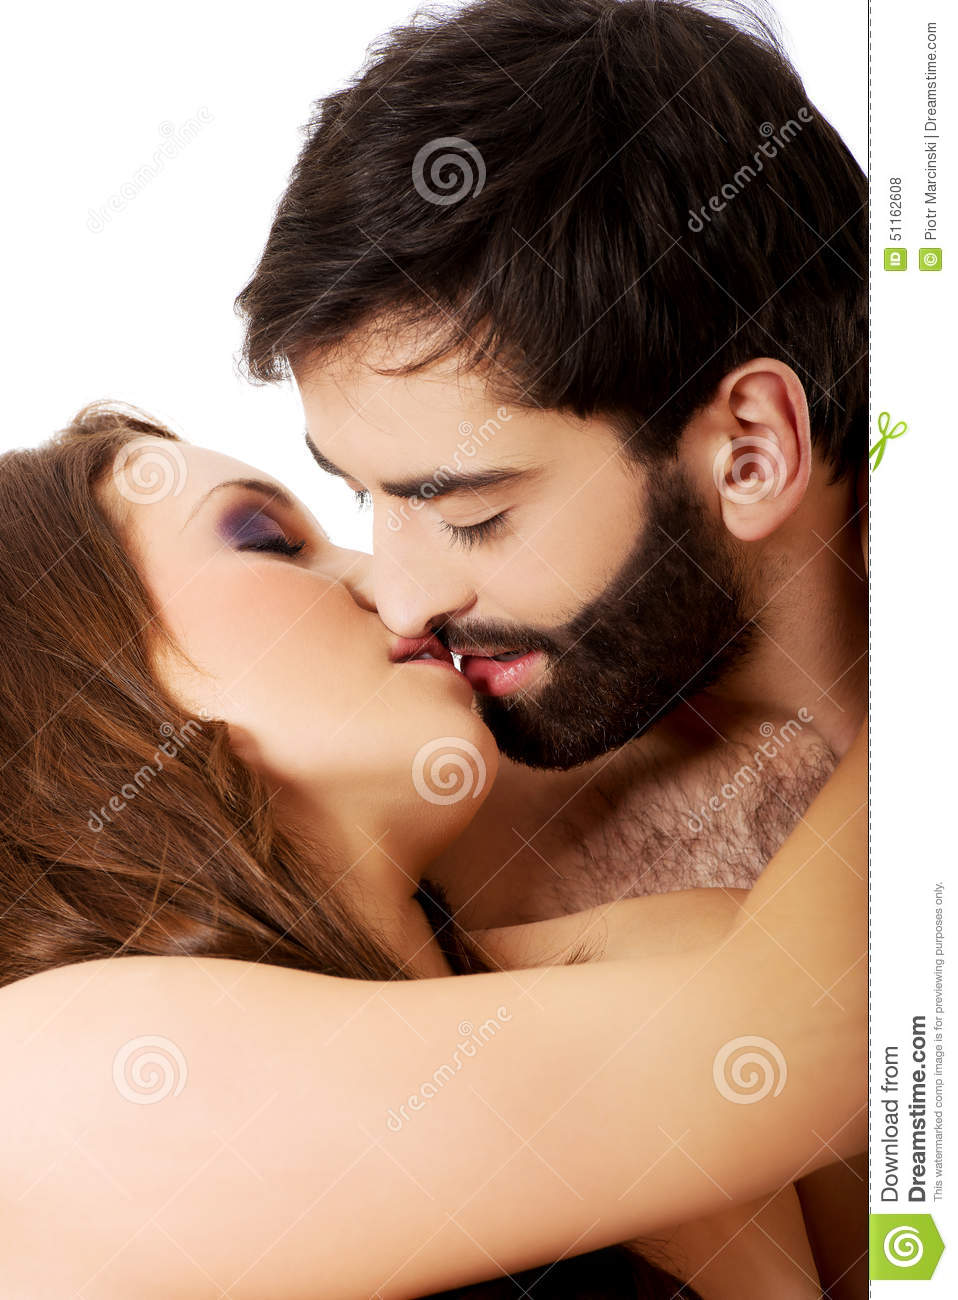 Heterosexual couples kissing